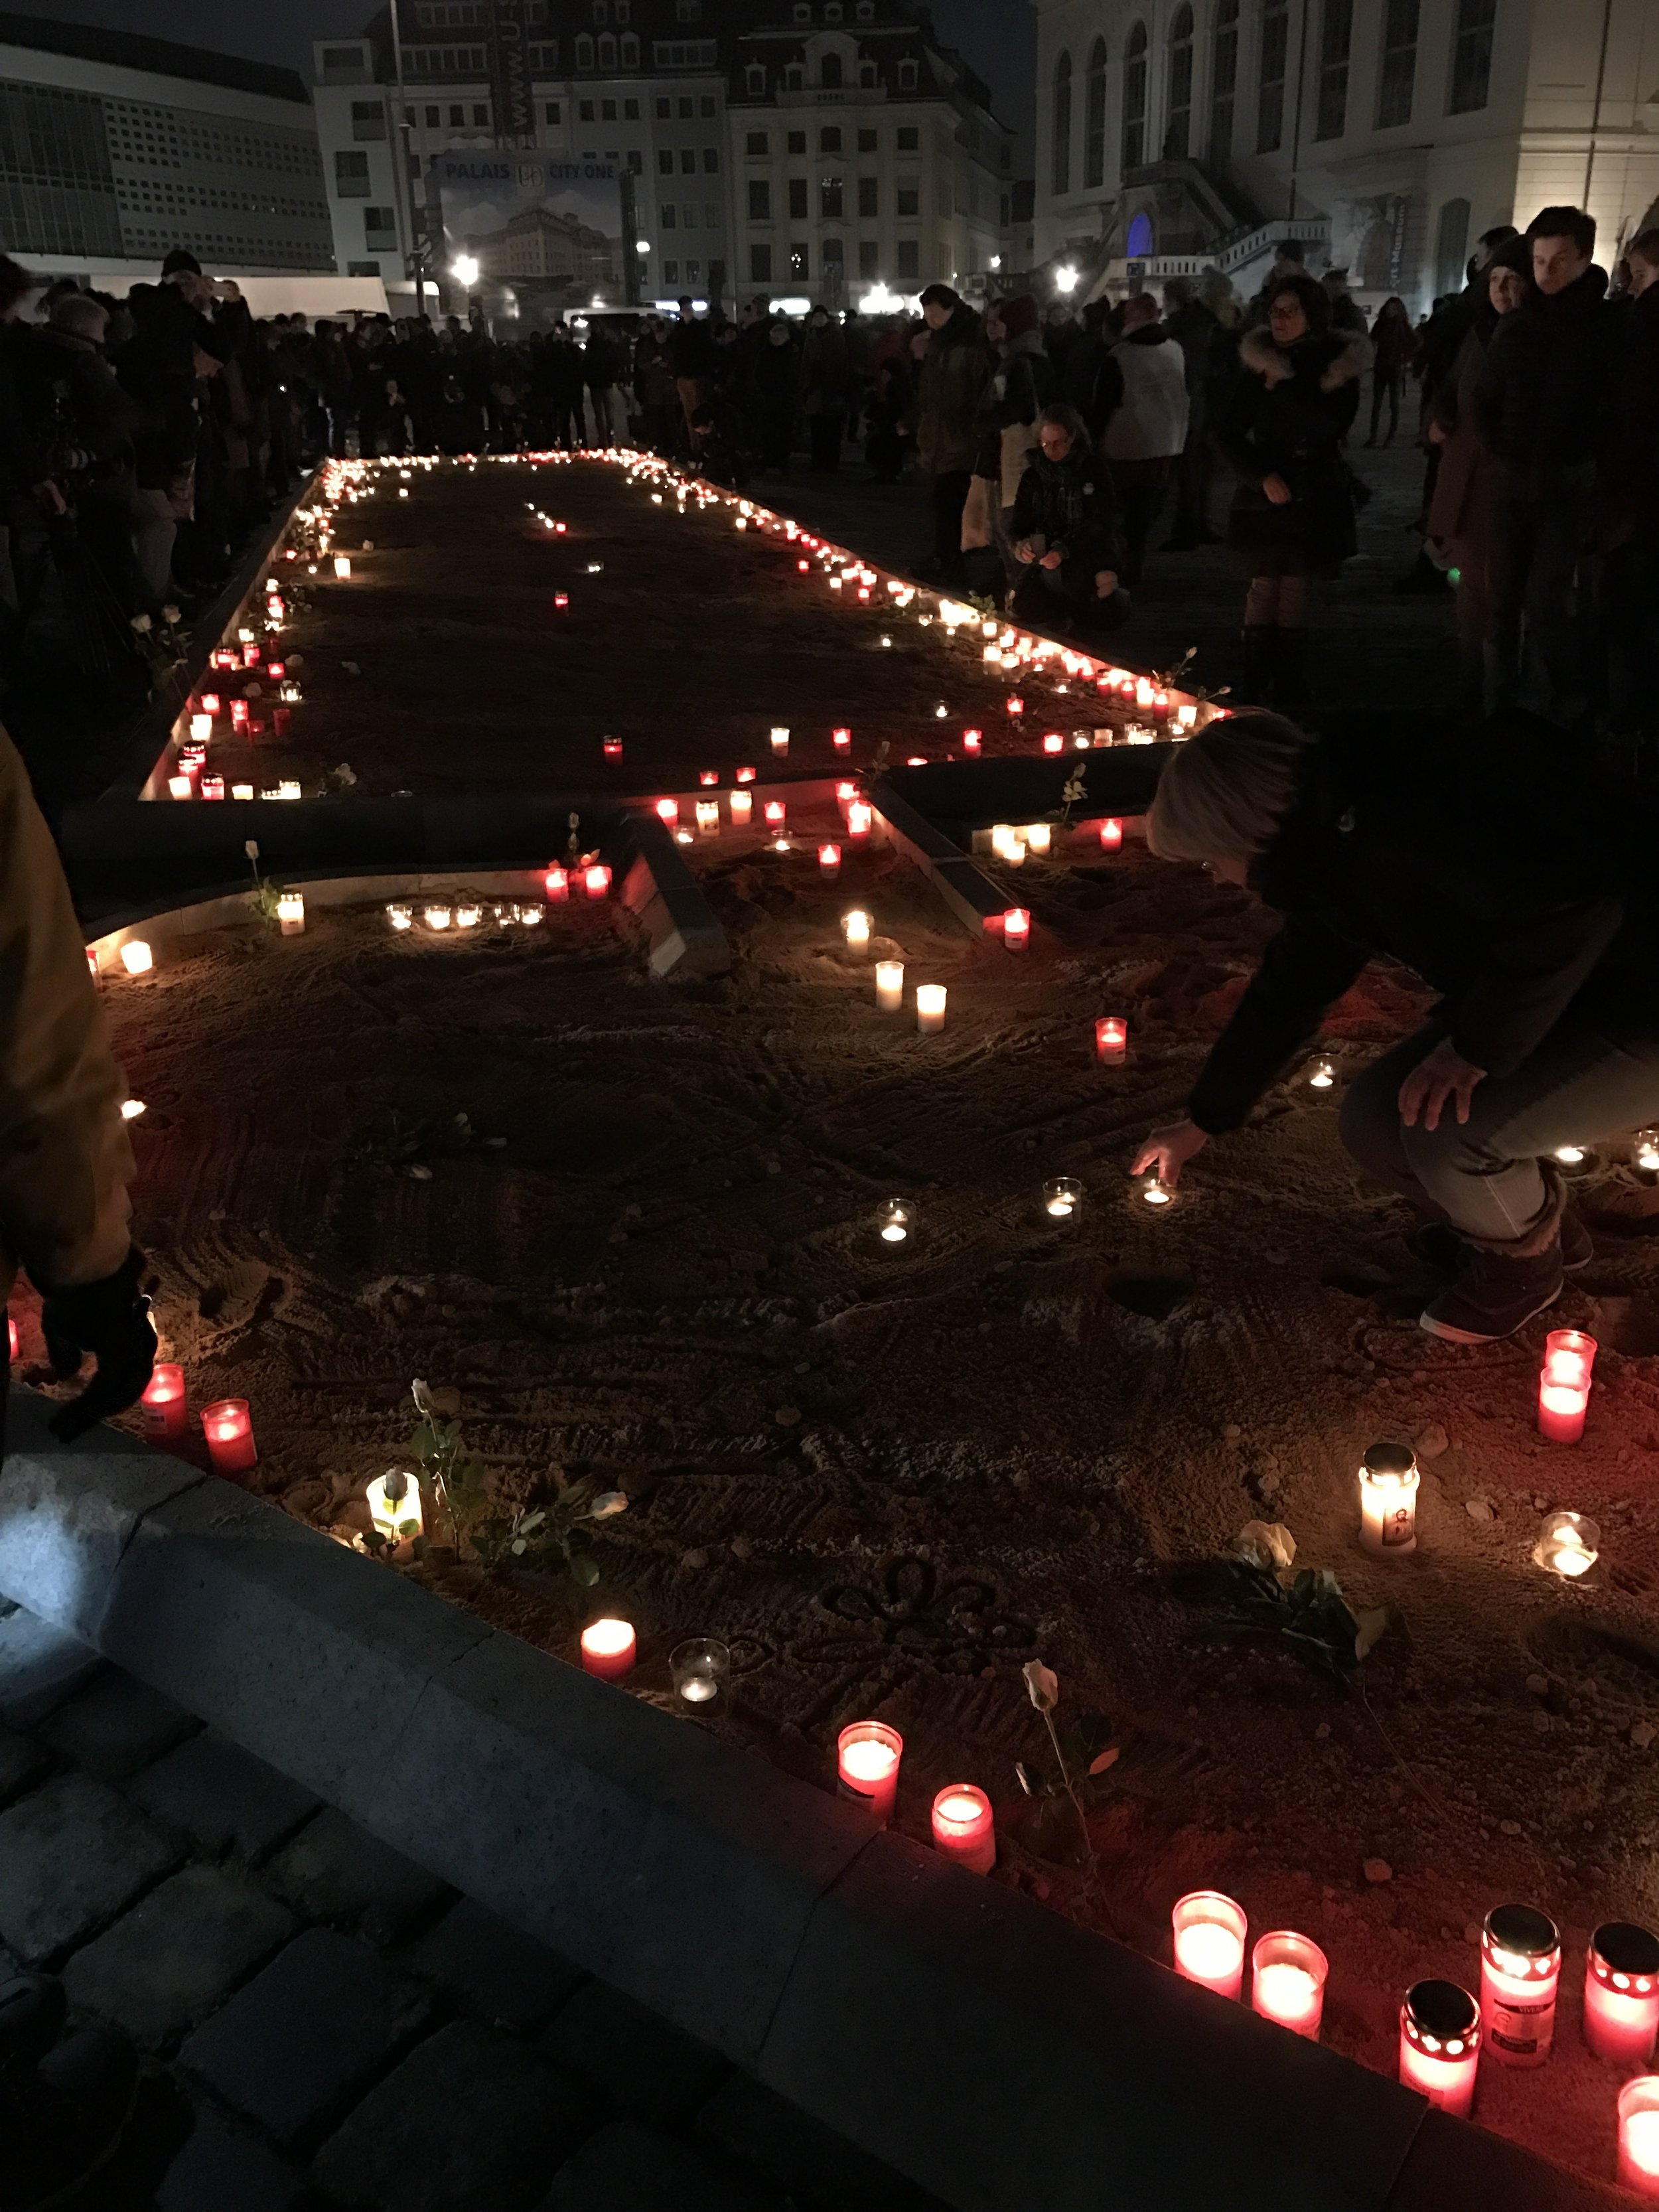 Candles lit in the center of downtown, in the square by the Church of Our Lady.